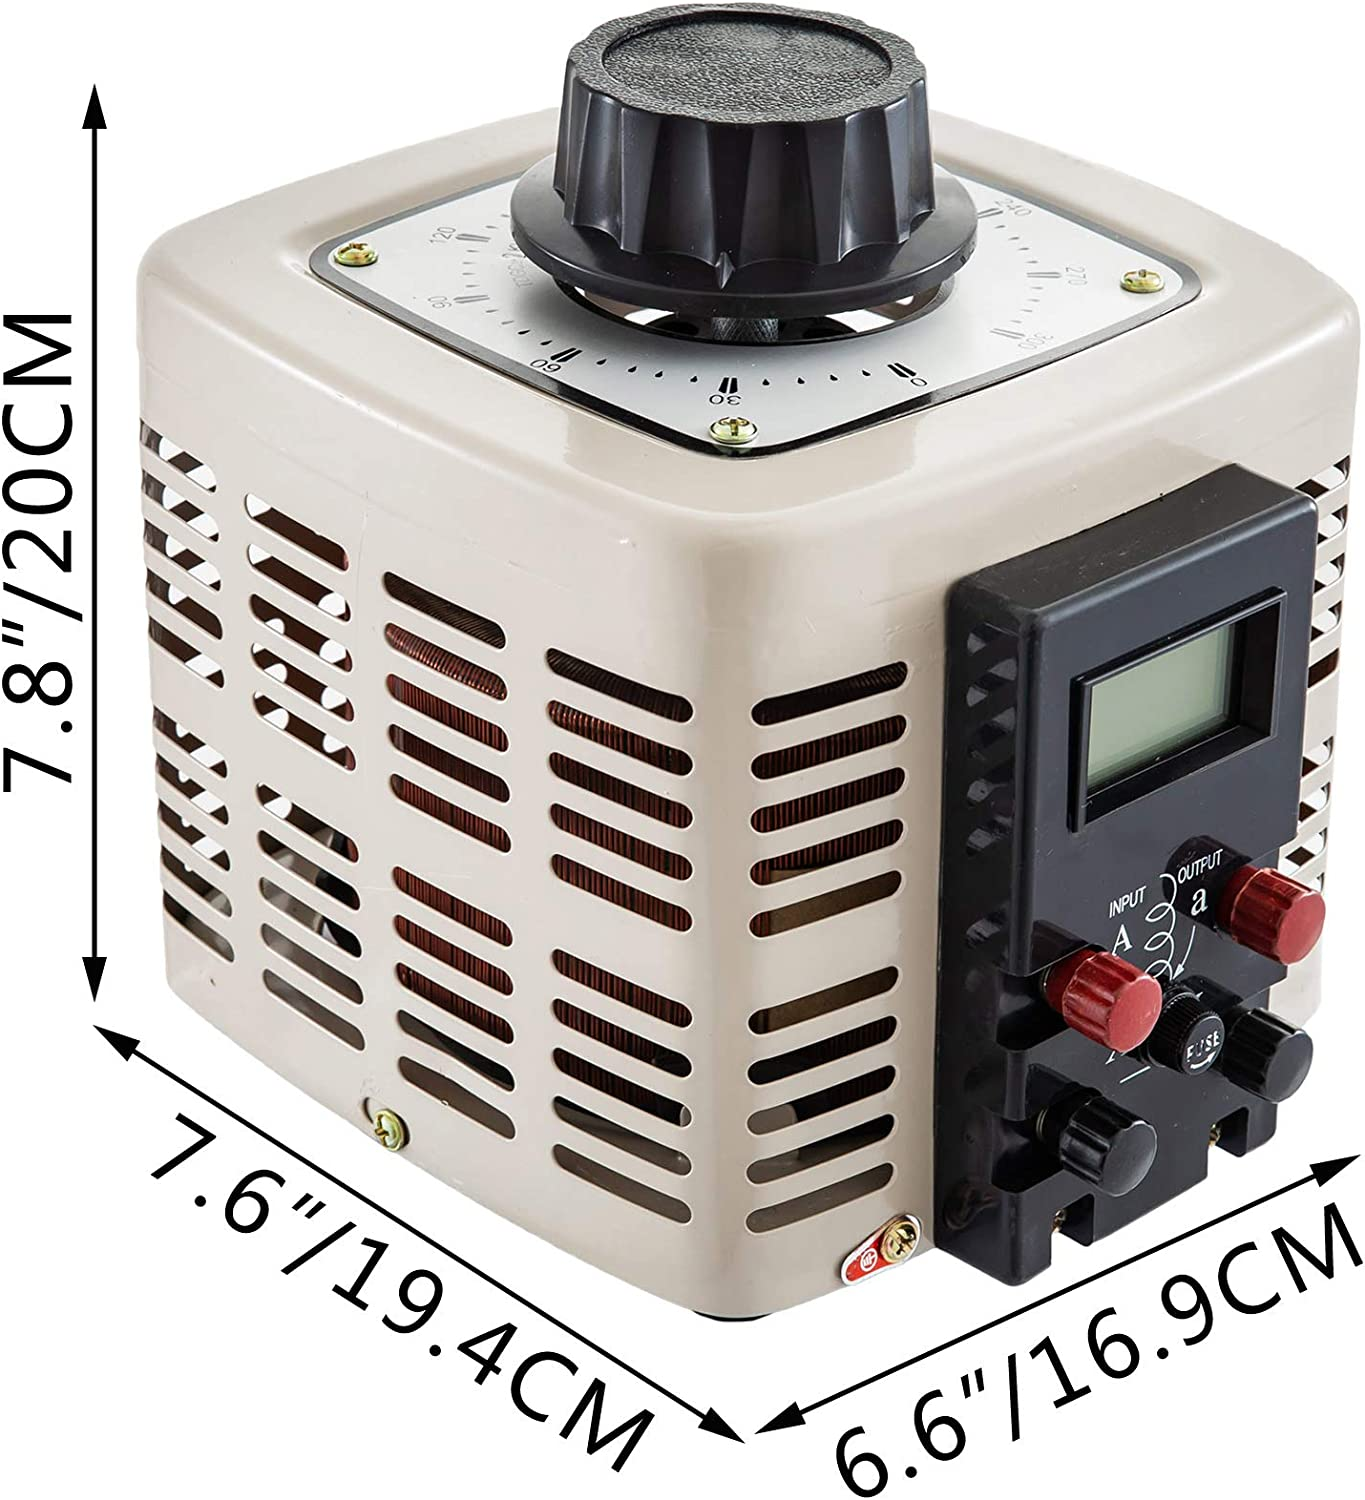 FlowerW 2KVA Variable Output Transformer 220V AC w//Copper Coil Variac Toroidal Core Variable Power Supply 2 Type Single Phase LCD Display with Fuse